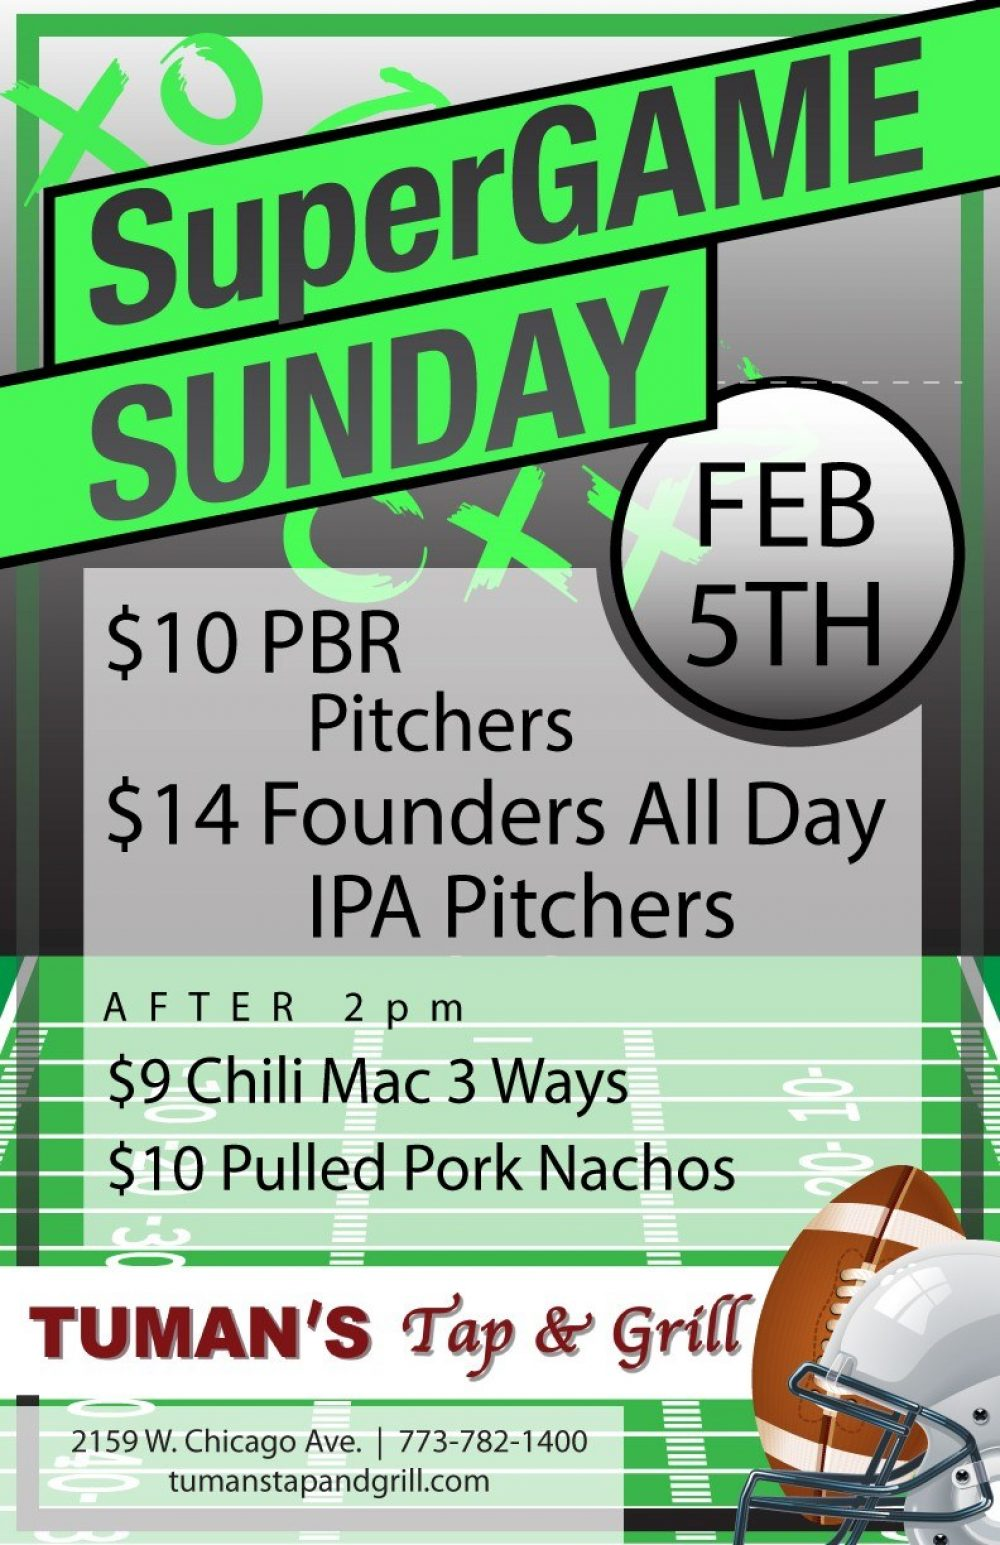 Super Game Sunday at Tuman's Tap & Grill